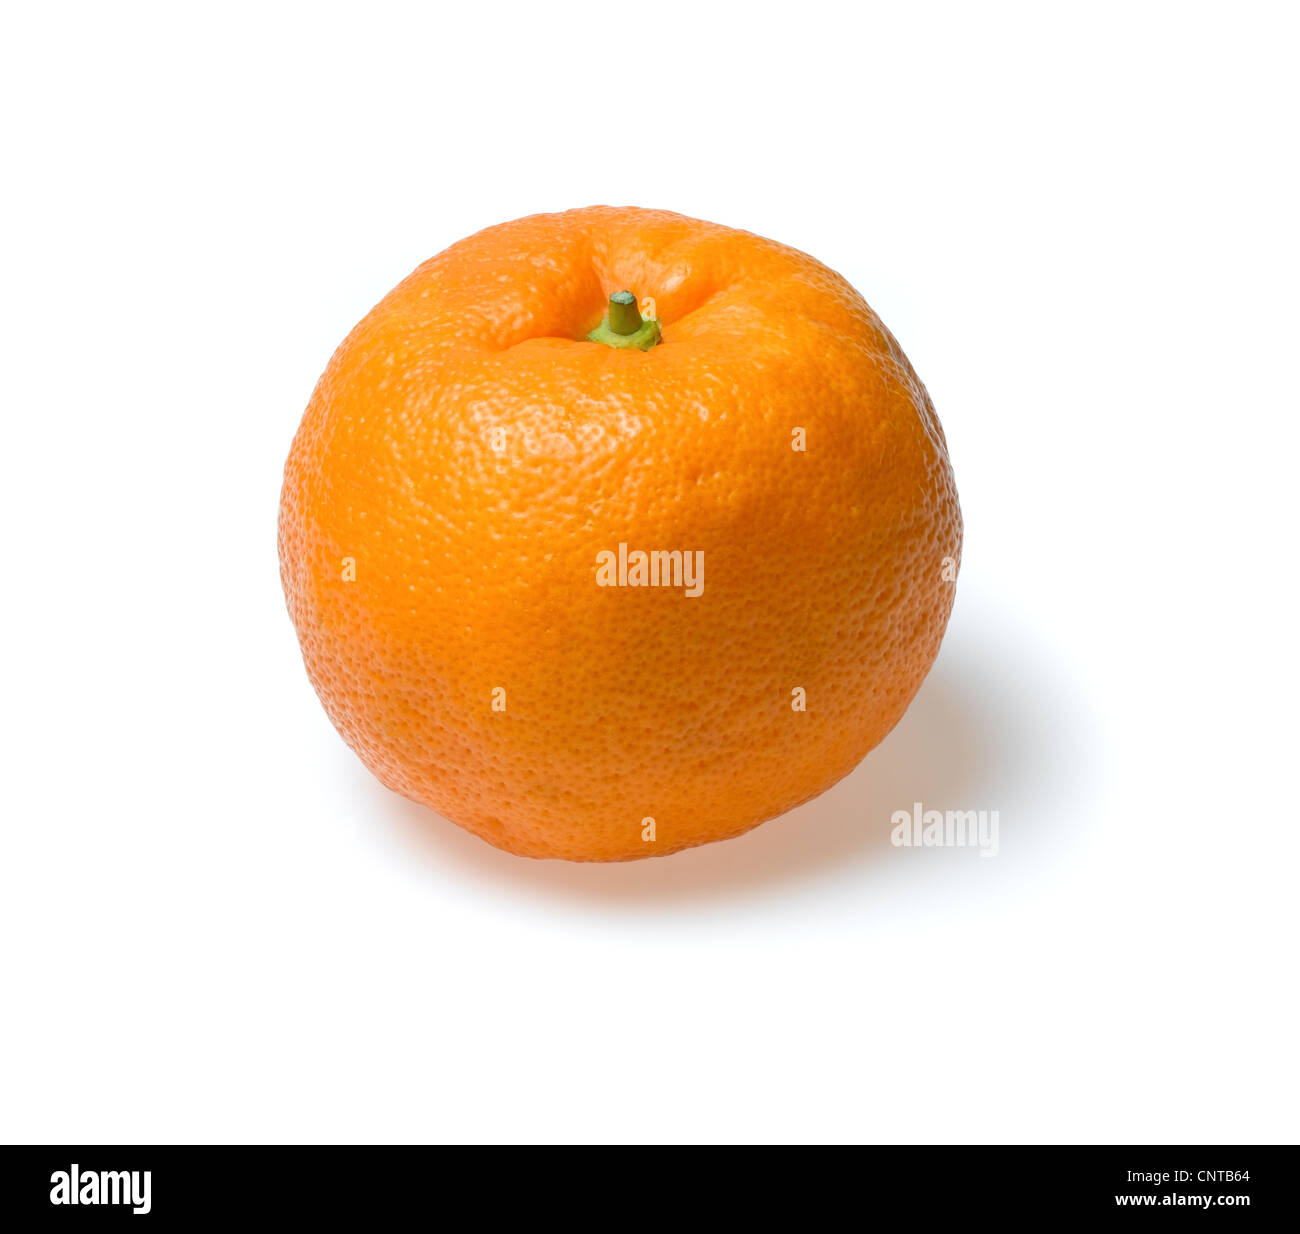 seville oranges - Stock Image